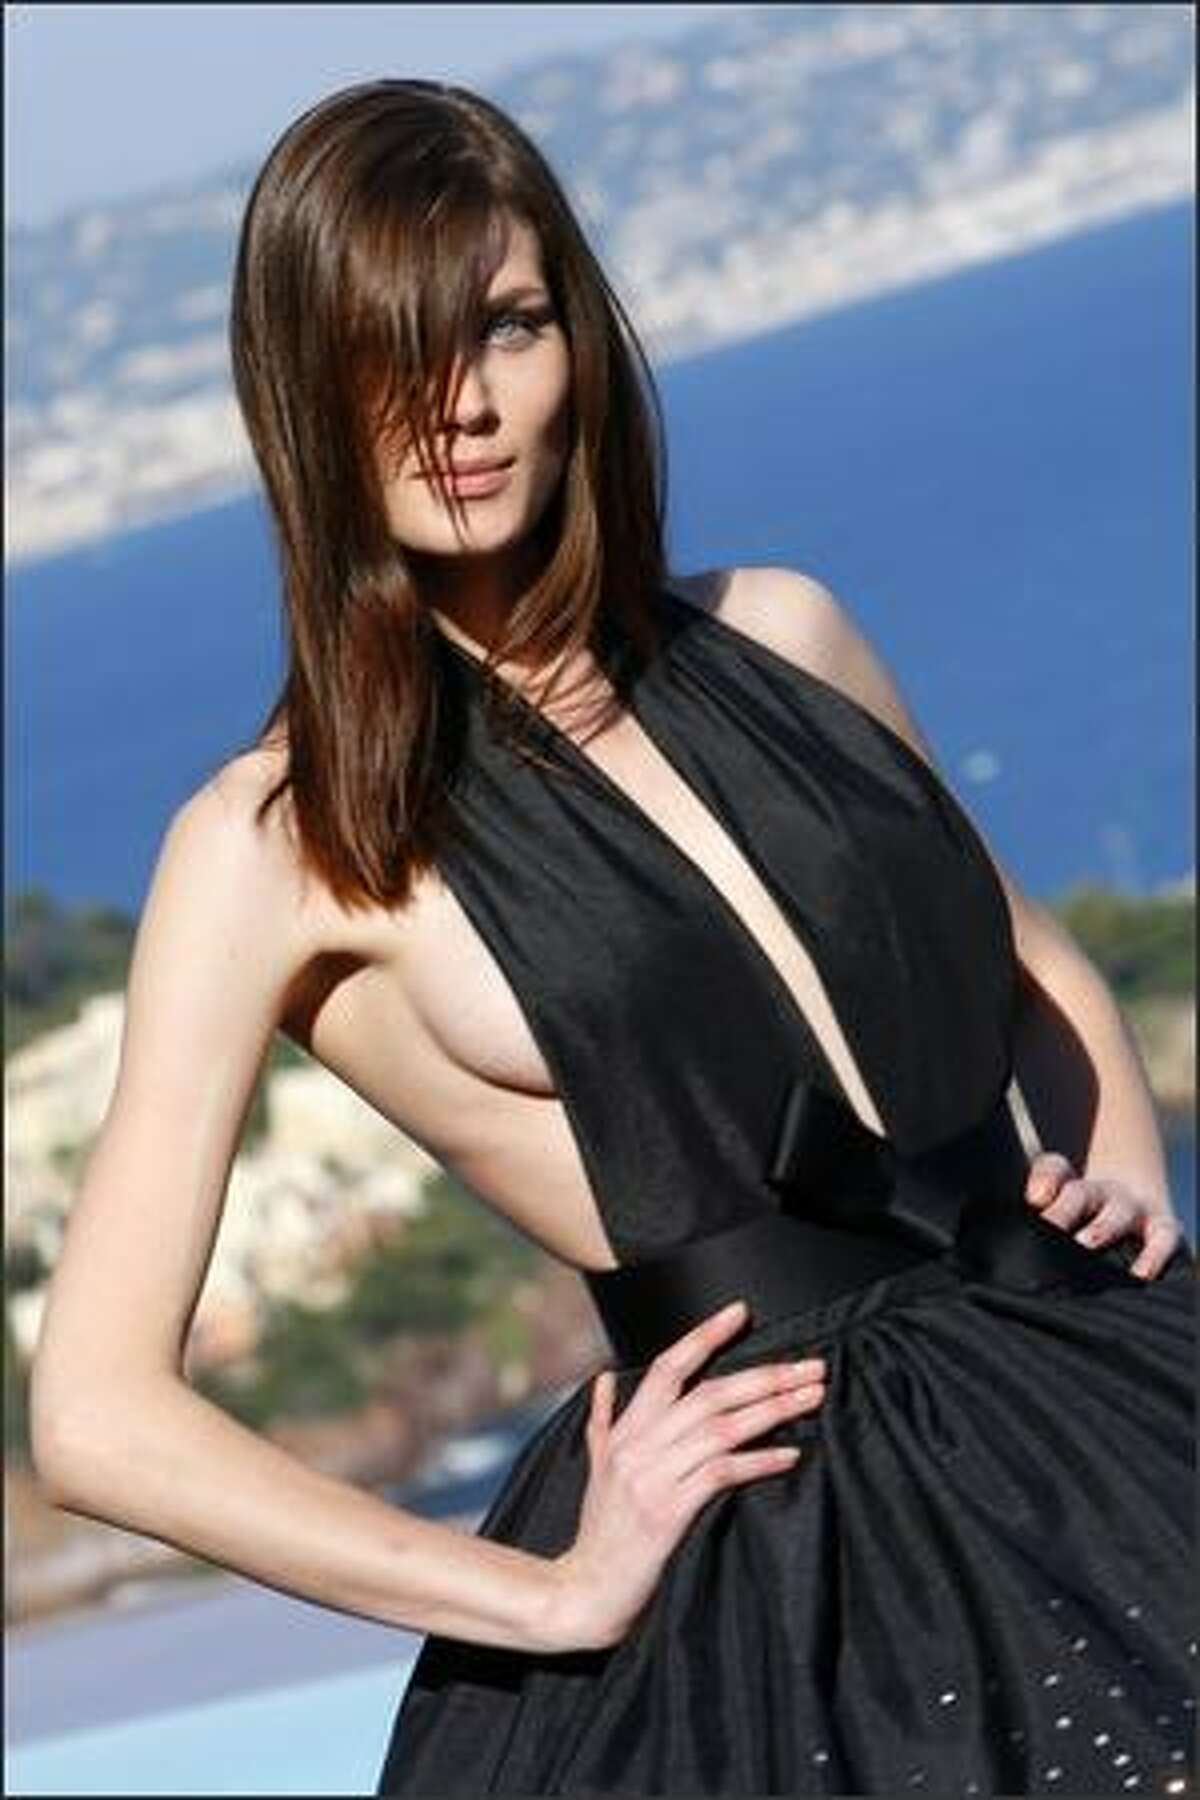 A model presents a creation by French designer Pierre Cardin during the presentation of his entire Spring-Summer 2009 and Autumn-Winter 2009 collections in his own villa in Theoule sur Mer, southern France, on Monday.